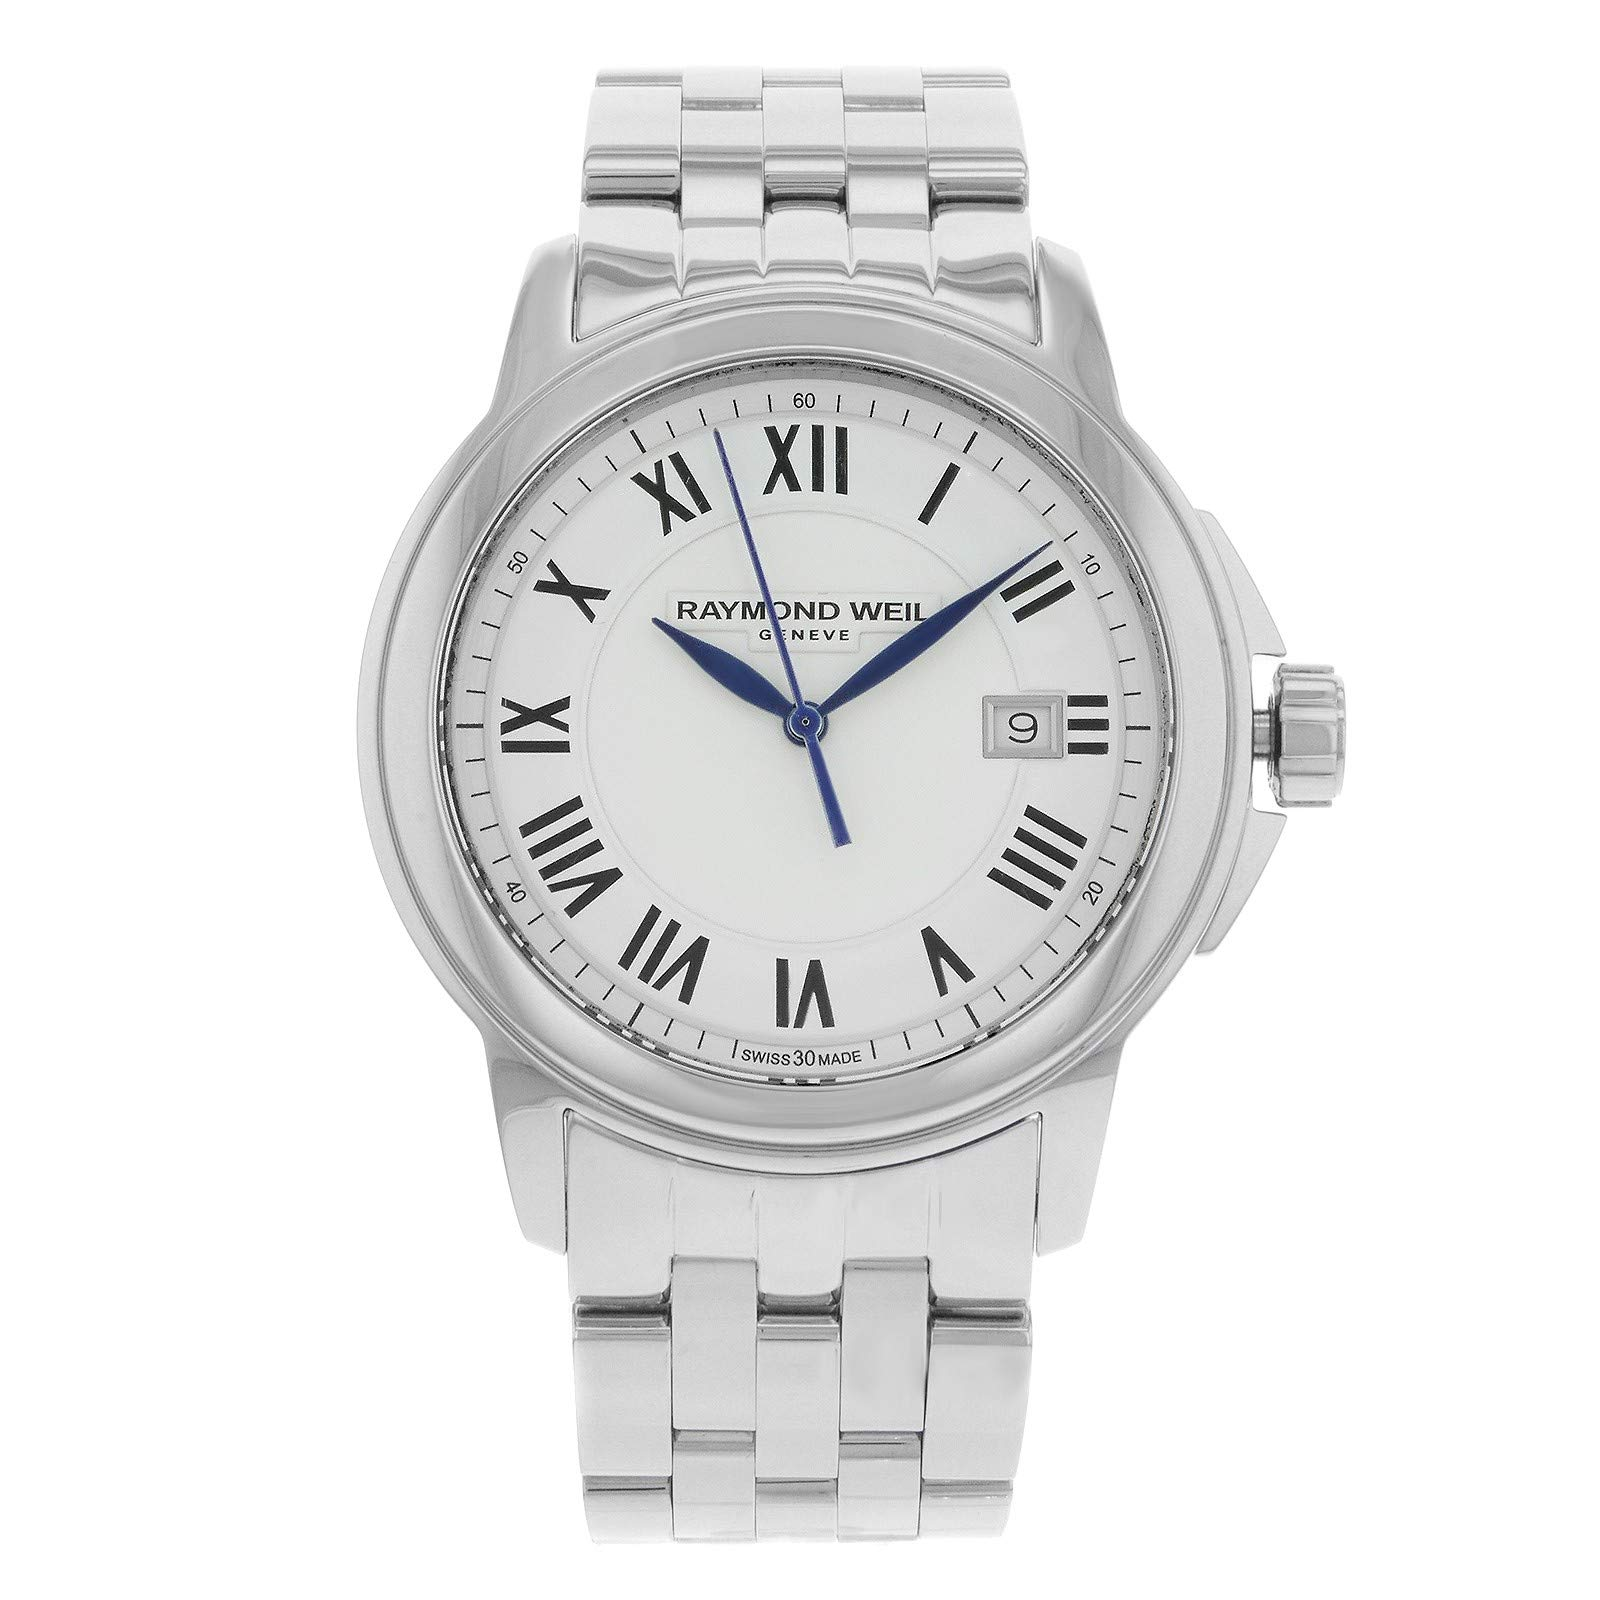 Raymond Weil Tradition Automatic-self-Wind Male Watch 5578-ST-00300 (Certified Pre-Owned) by RAYMOND WEIL (Image #1)